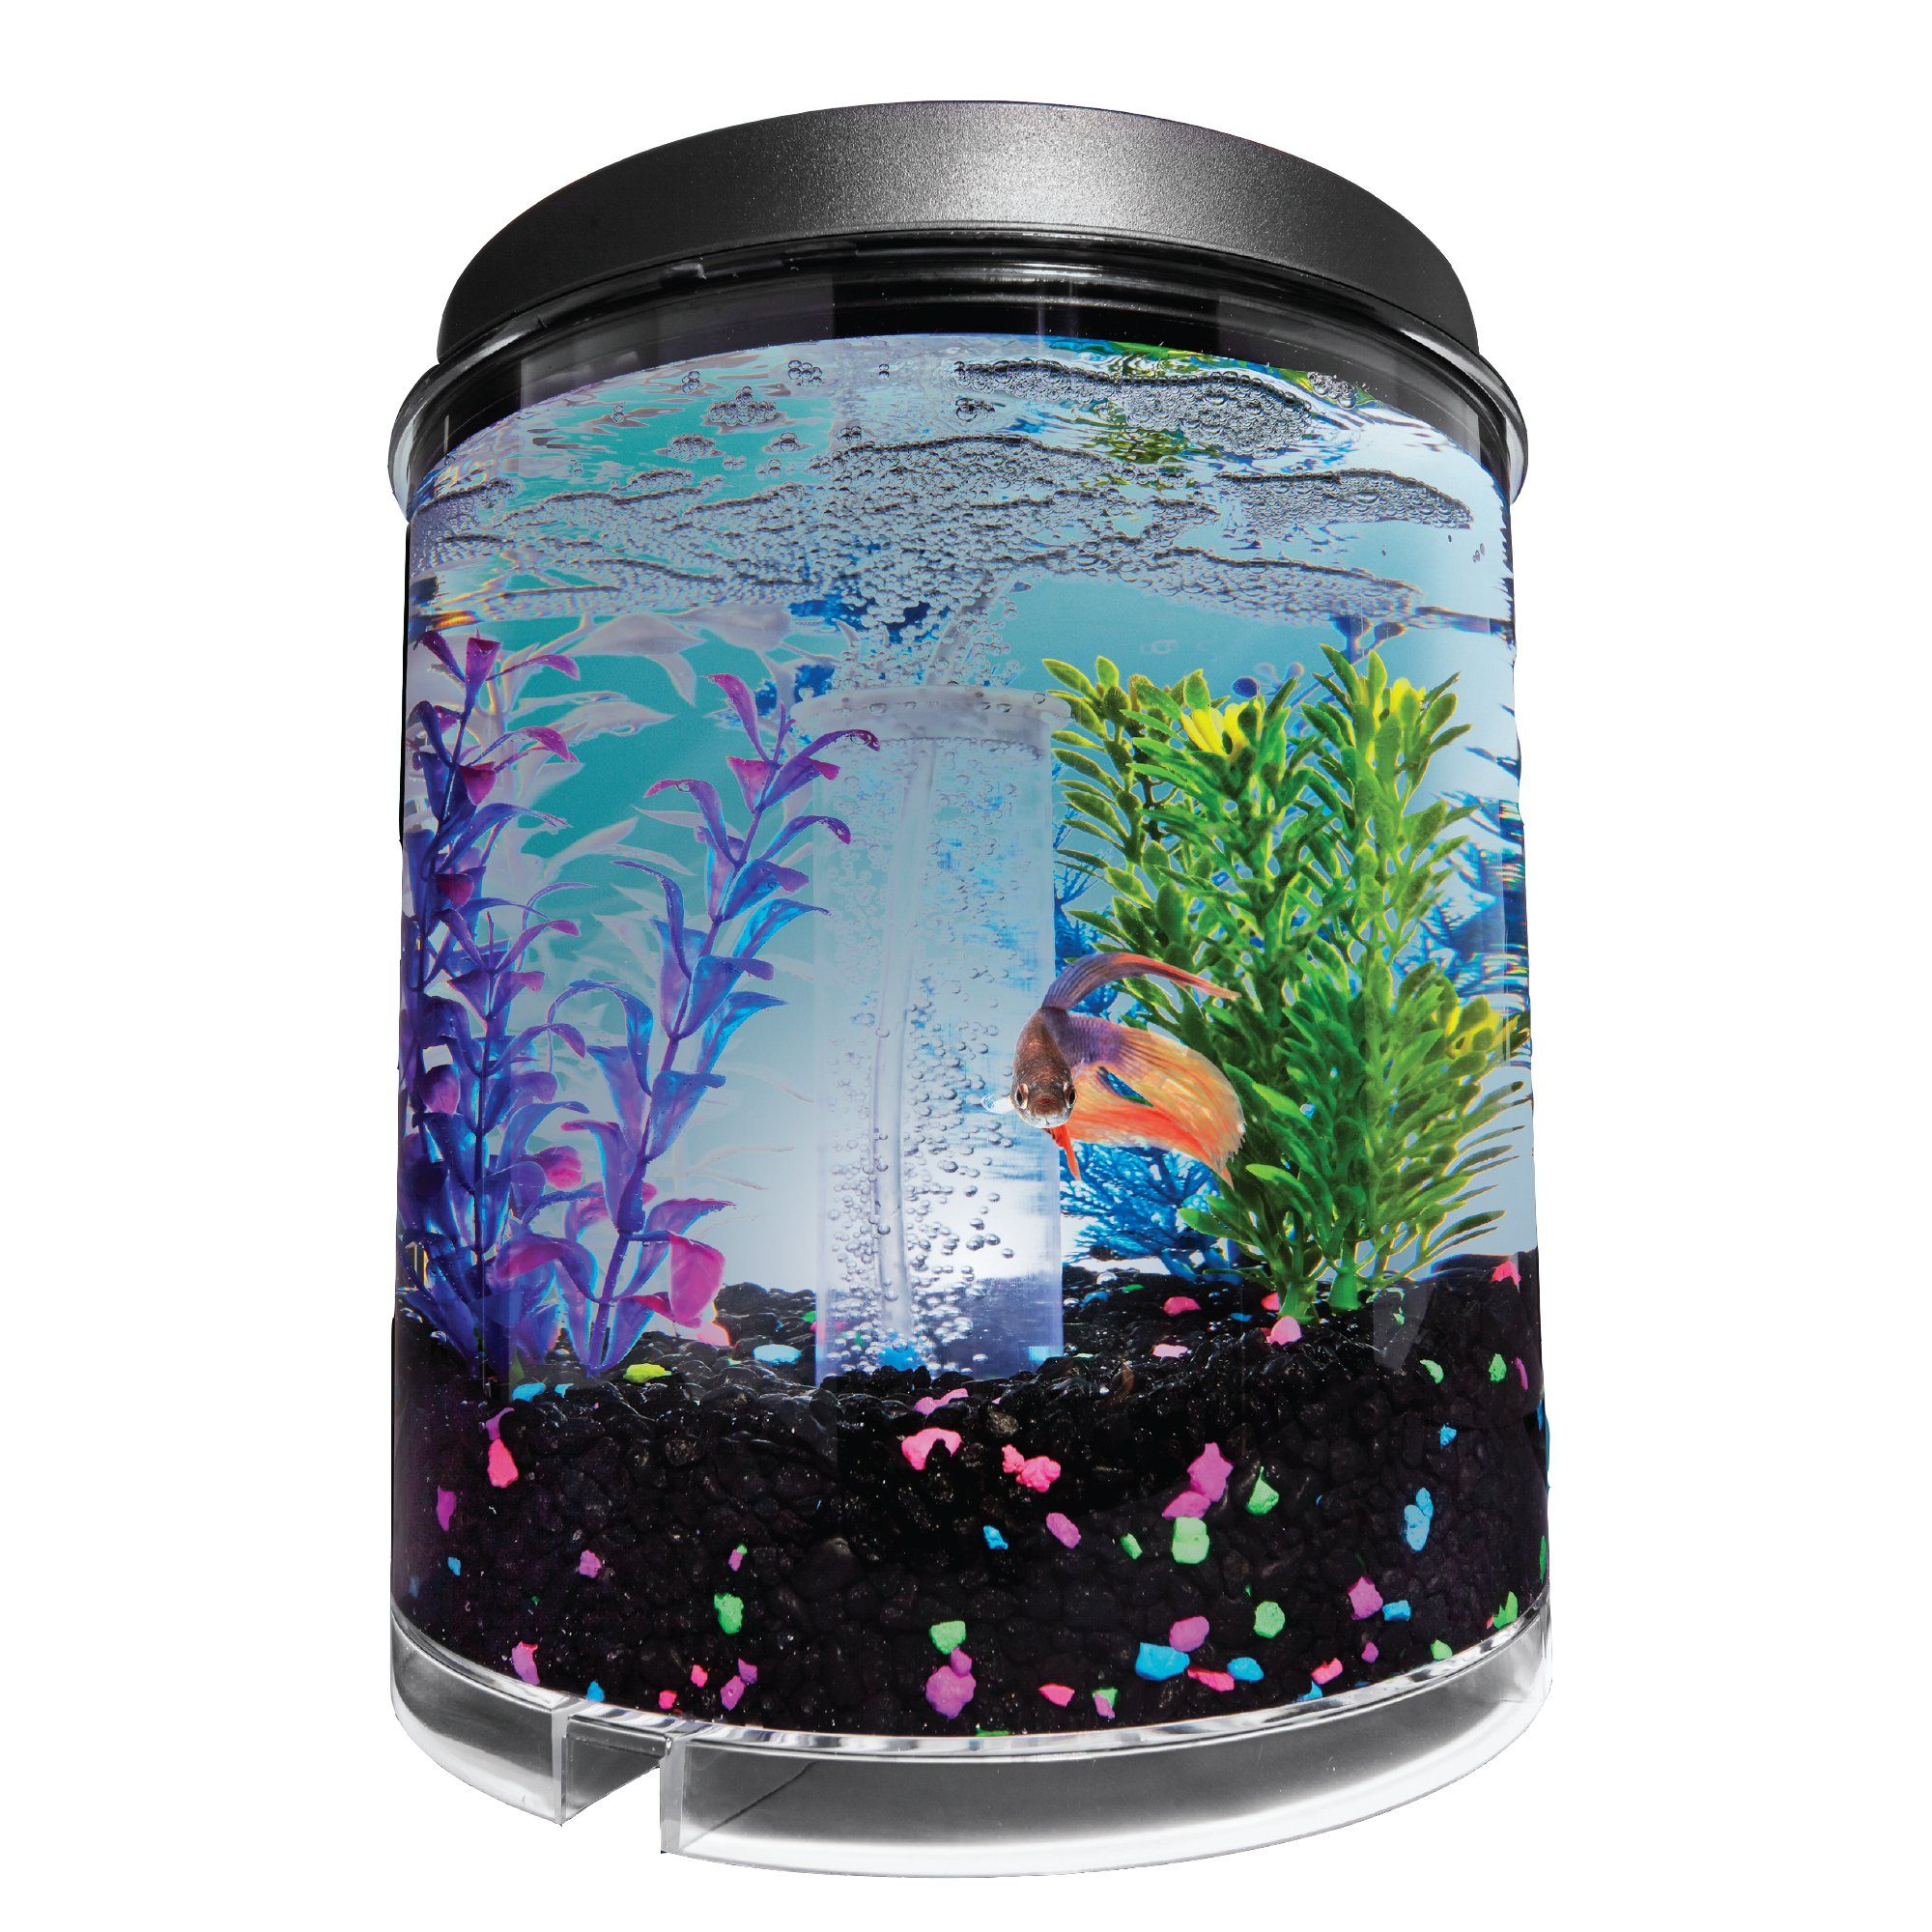 Imagitarium 2 Gallon Cumberland Tank Petco In 2020 Cool Fish Tank Decorations Cool Fish Tanks Fish Tank Accessories